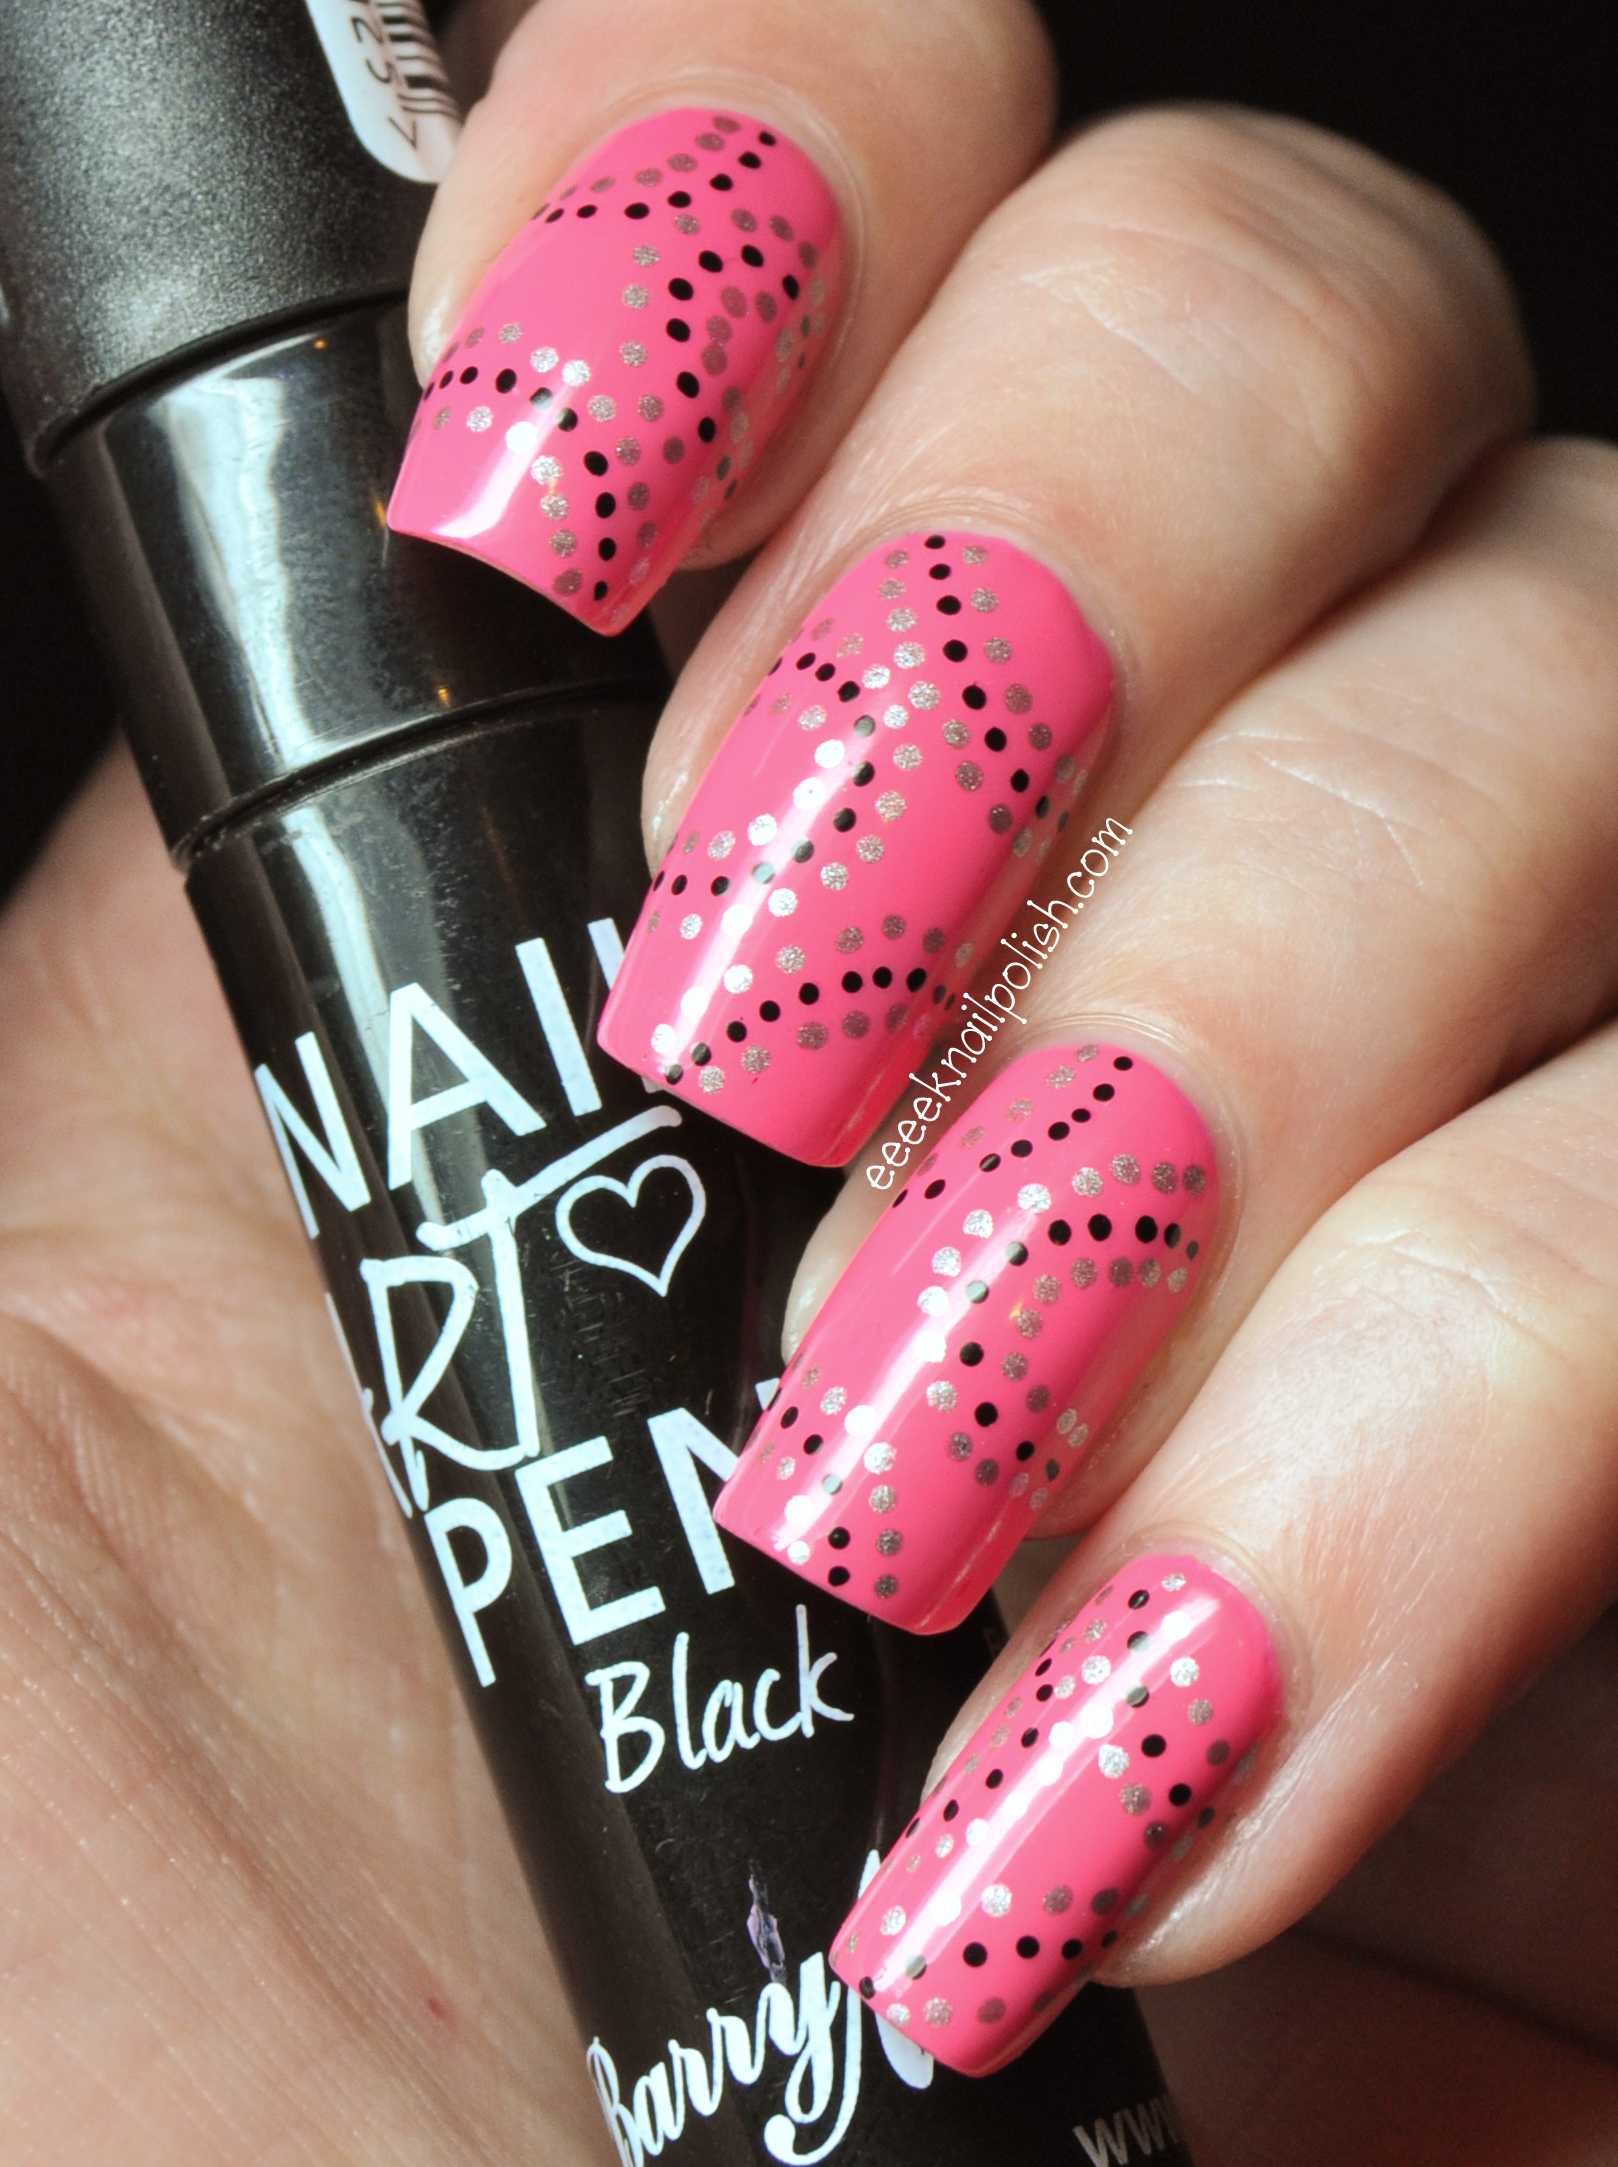 Nail Art Pens Pictures : 7 Cool Nail Art Pen Designs | Woman Fashion ...